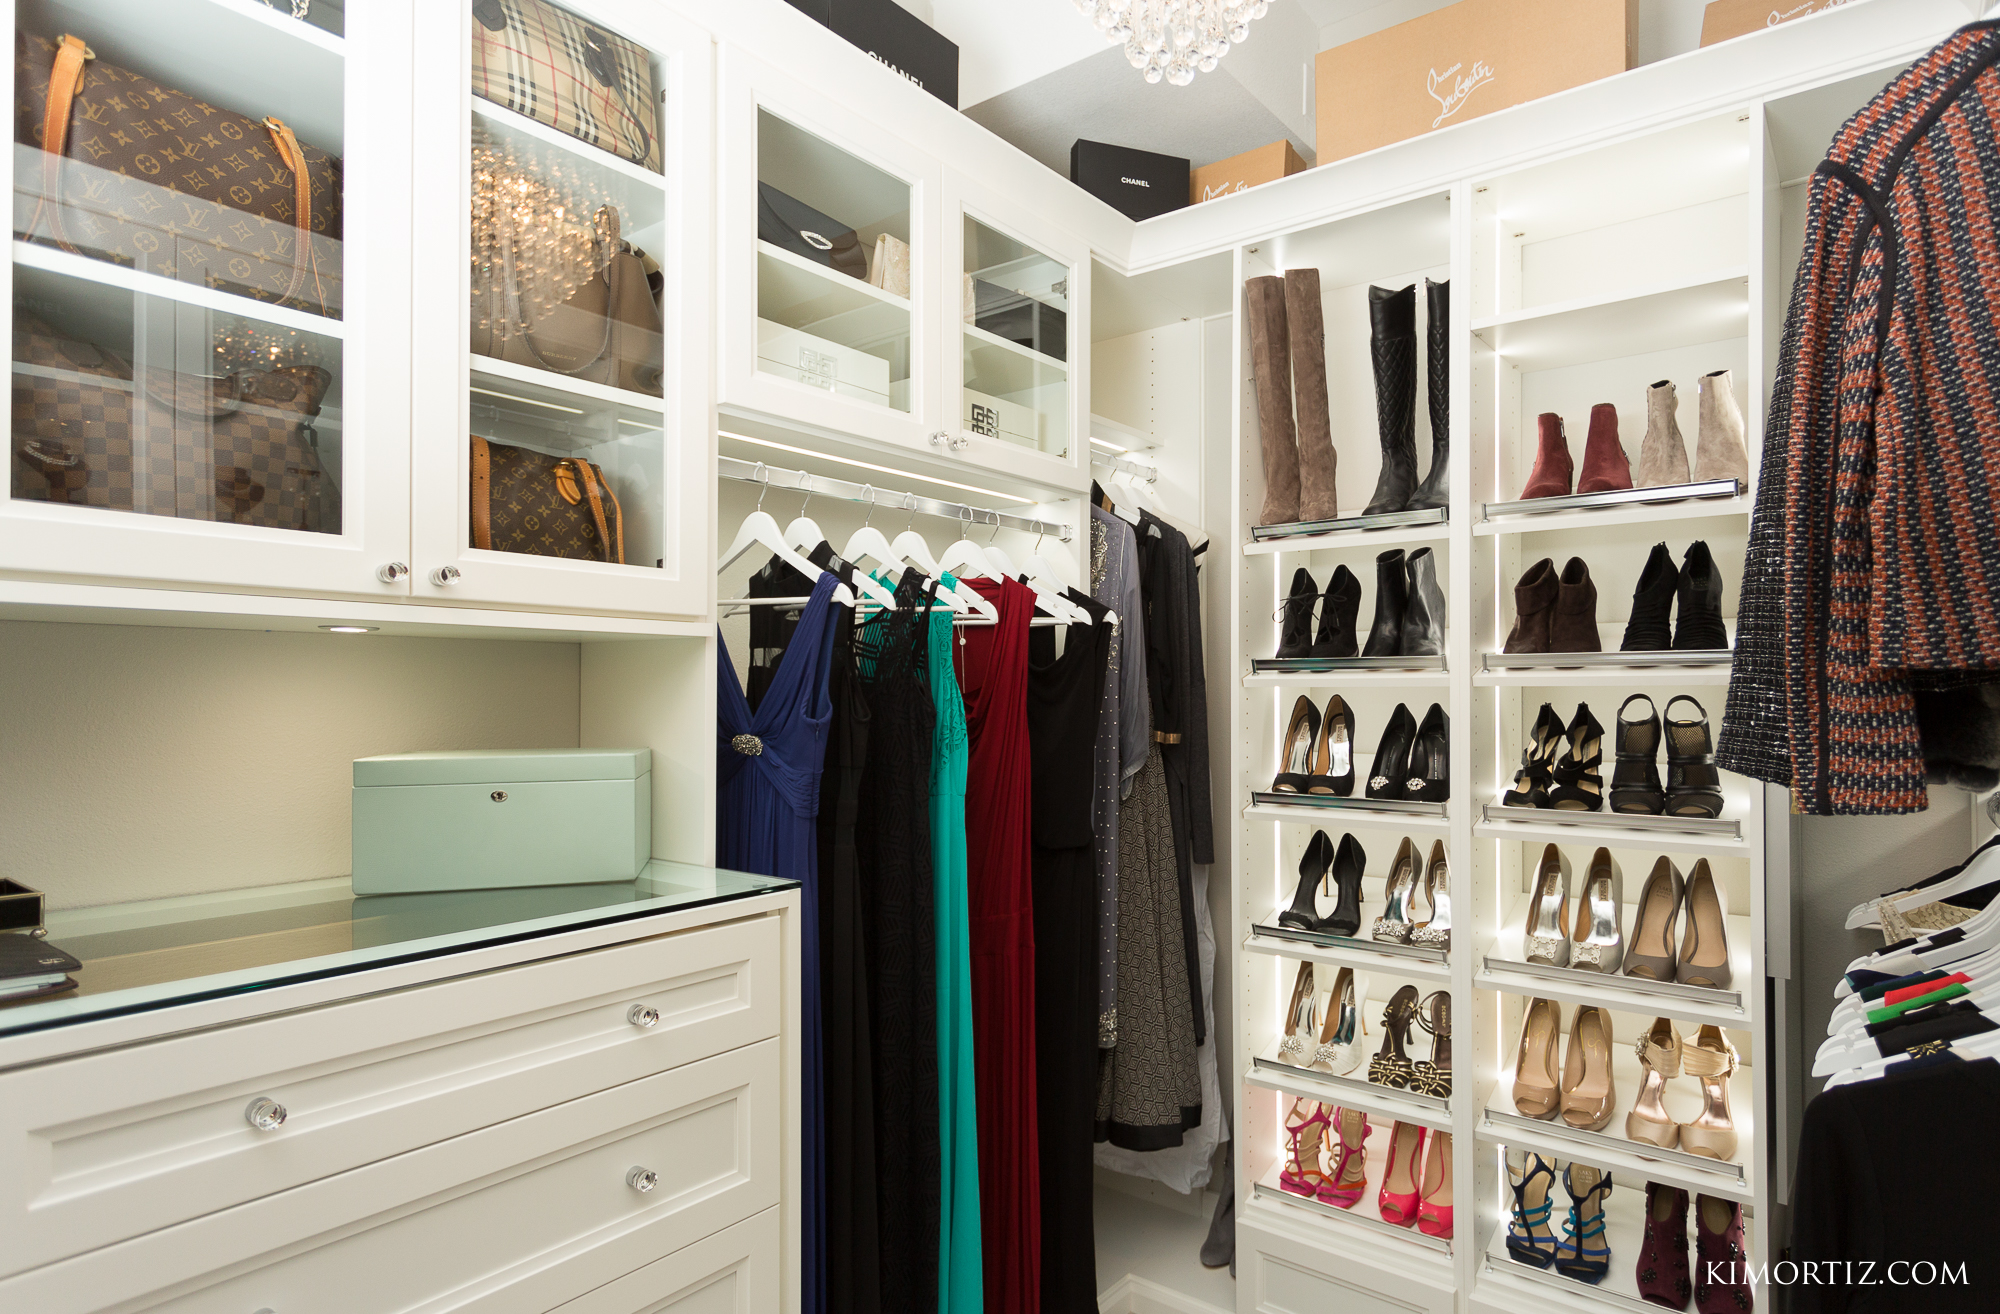 Awesome Closet Envy The New Name In Luxury Fear Of Opening Closets 25 Ridiculously  Unreasonable Fears